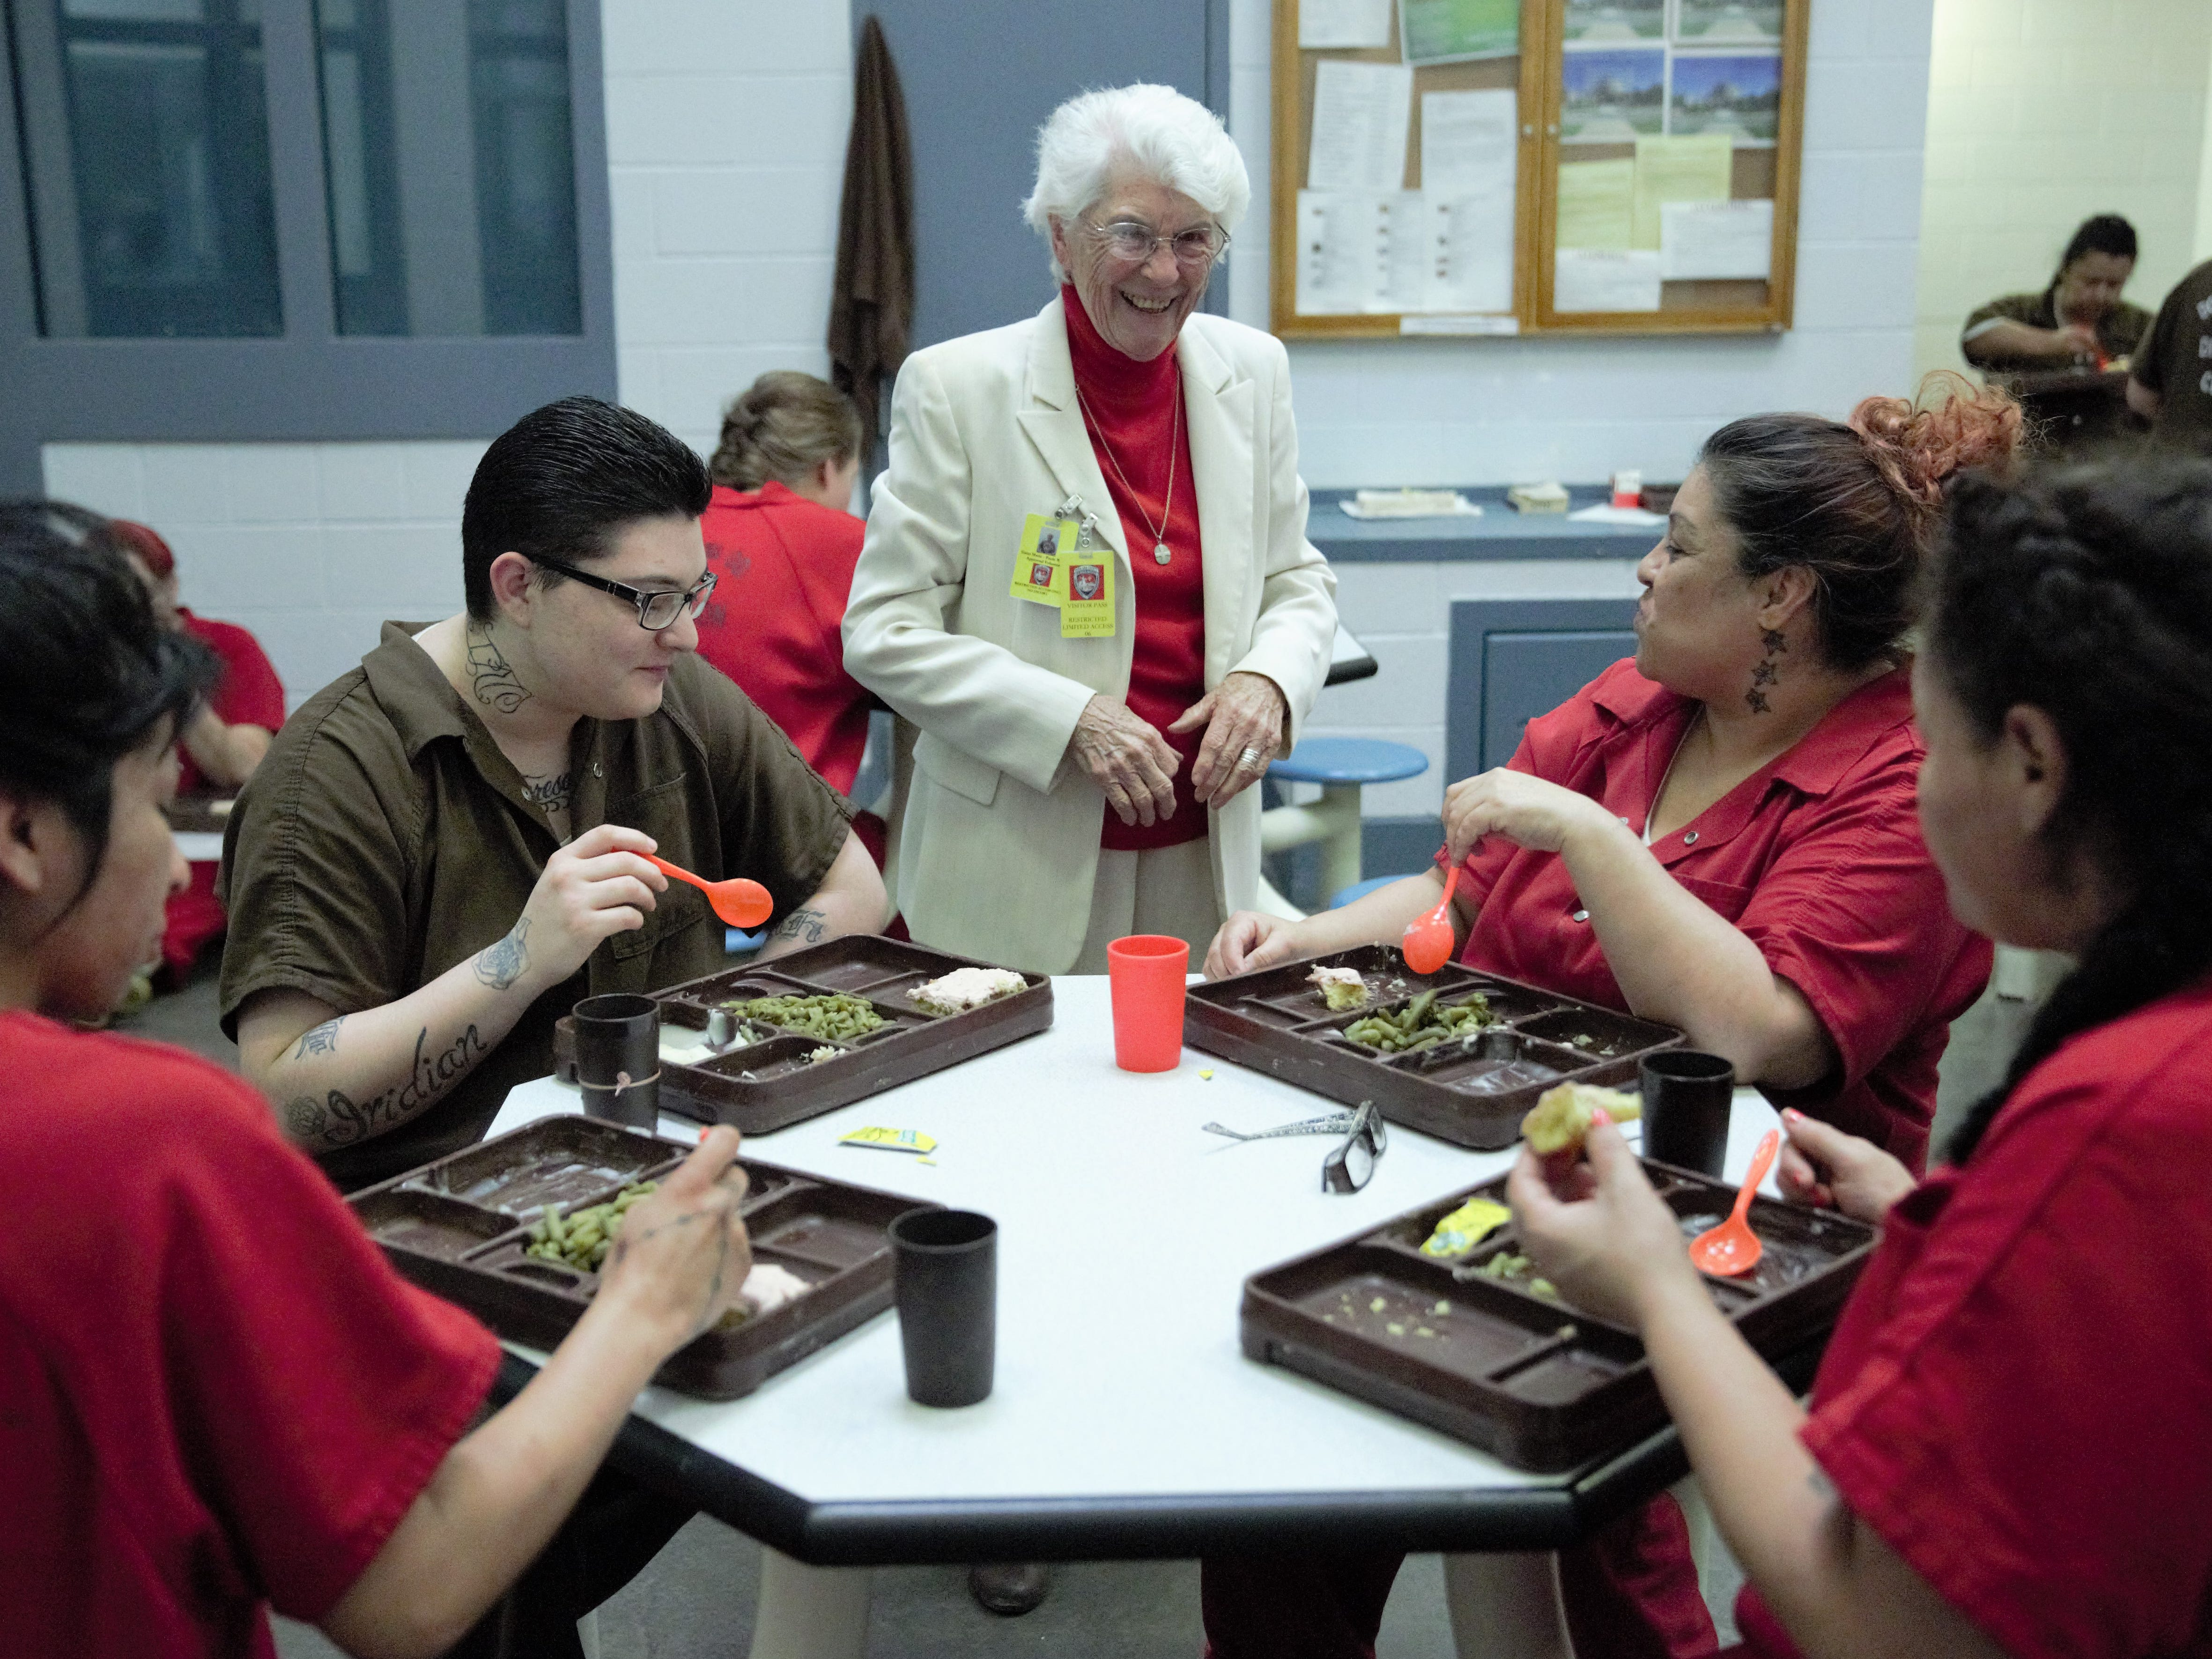 A group of women inmates at the Doña Ana County Detention Center finishes a Christmas Day lunch on Tuesday, Dec. 25, 2018, as Sister Marie-Paule Willem and two other visitors arrive to host a Christmas church service.